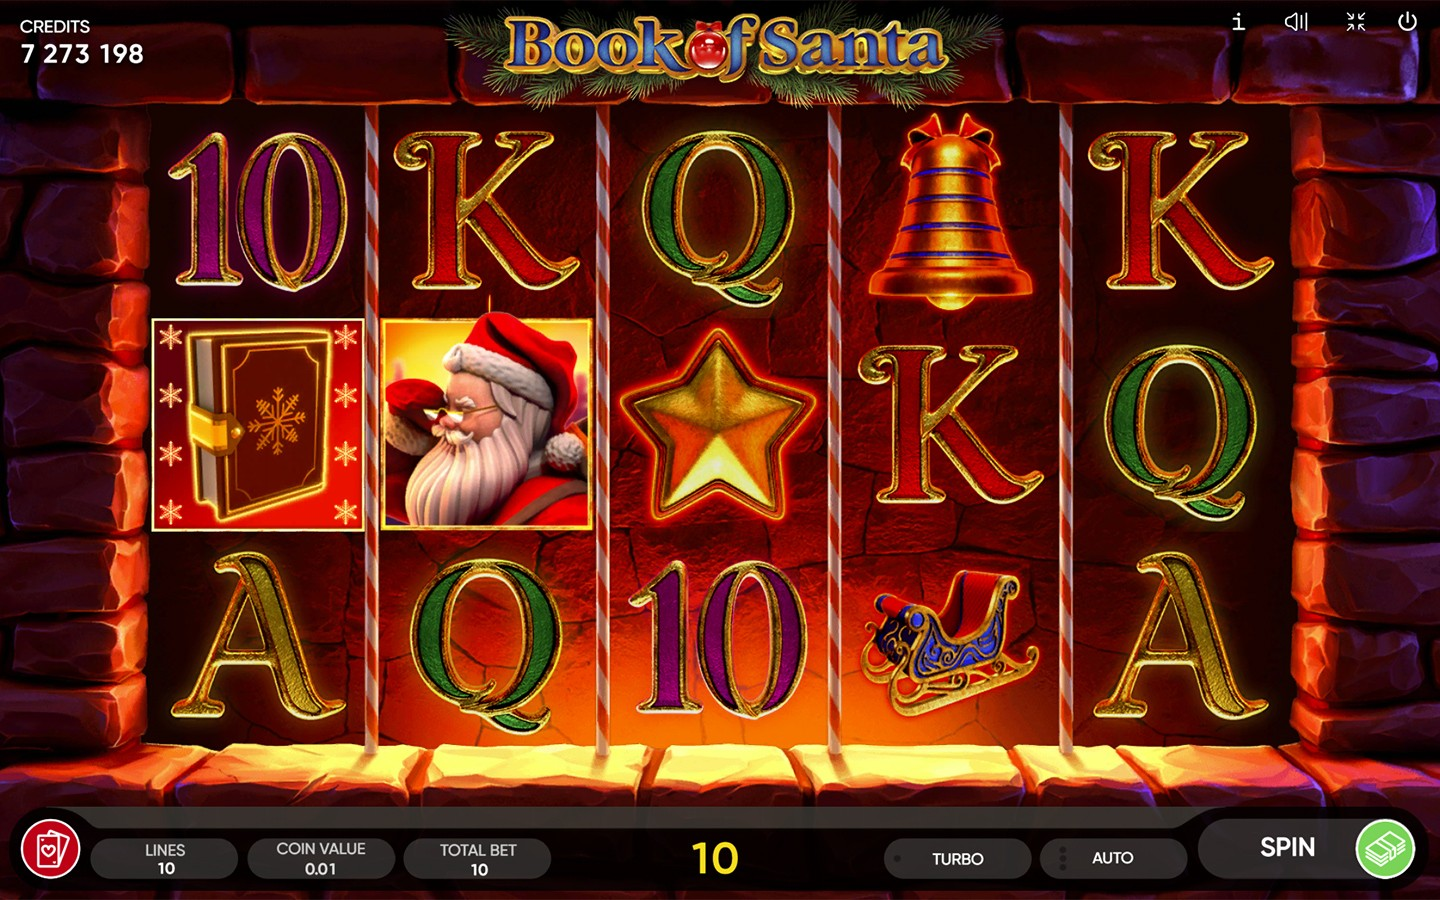 BEST BOOK SLOT OF 2020 | Try Book of Santa game online!